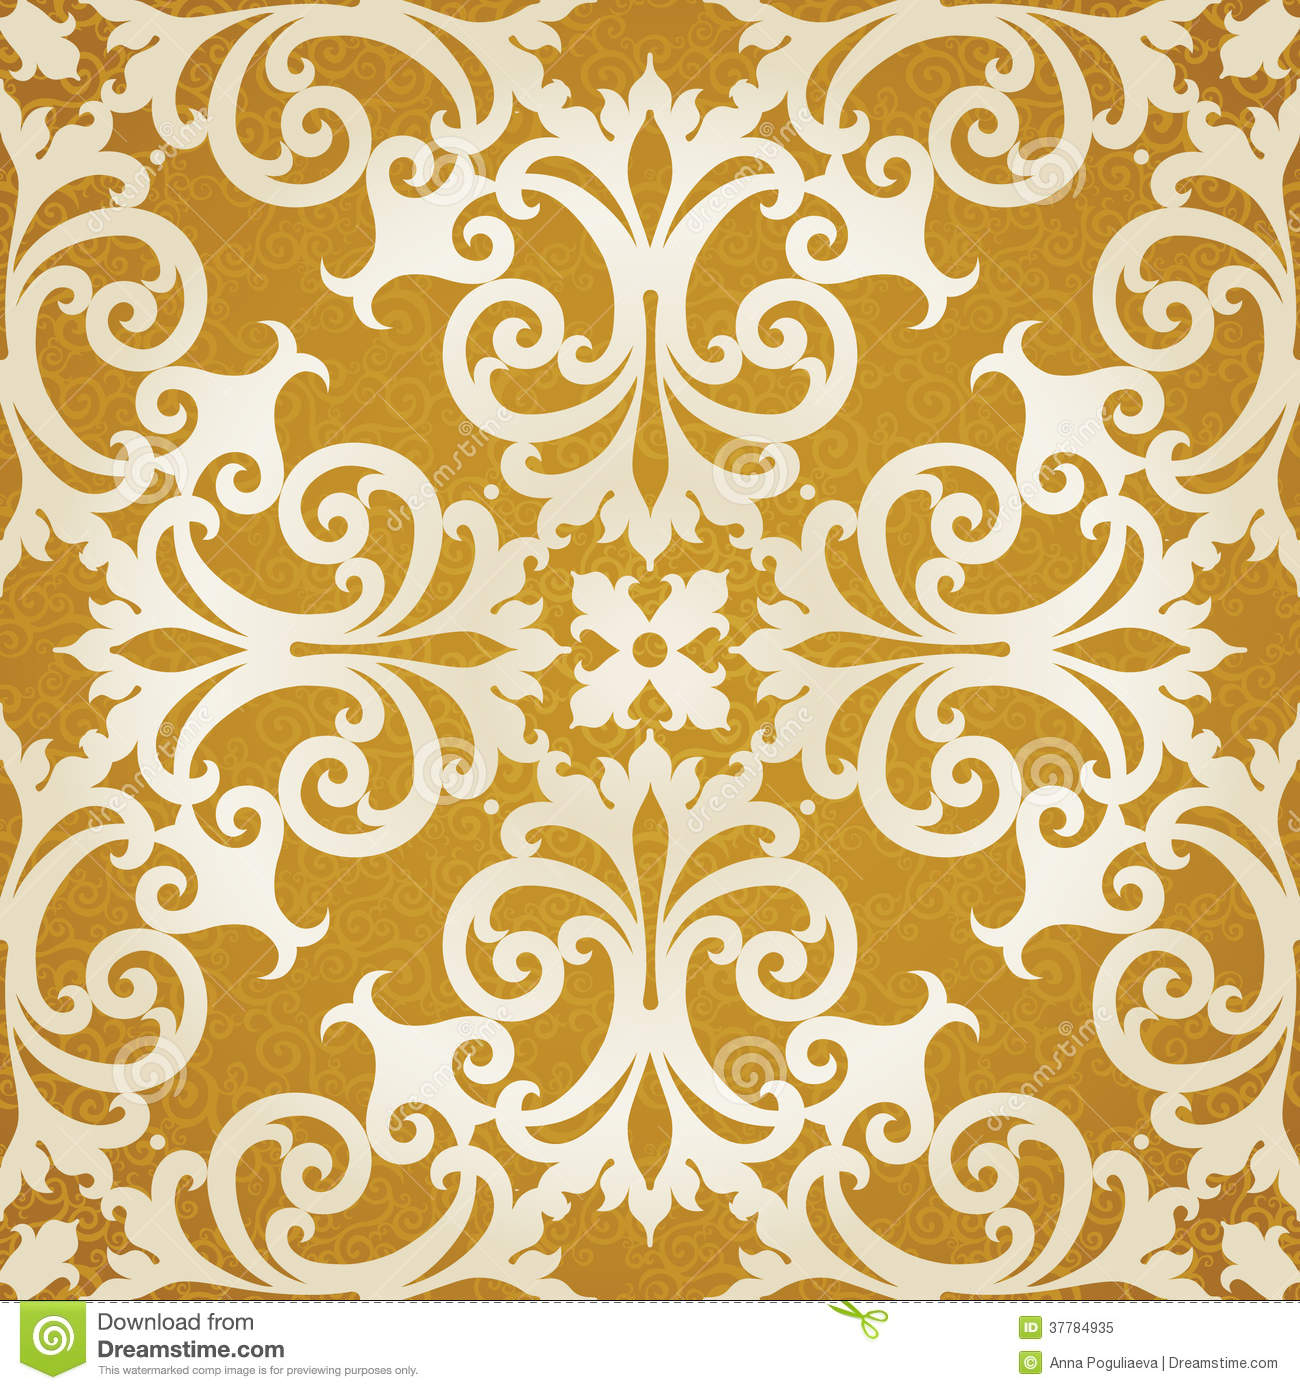 vector seamless pattern with swirls and floral motifs in retro style royalty free stock photo. Black Bedroom Furniture Sets. Home Design Ideas